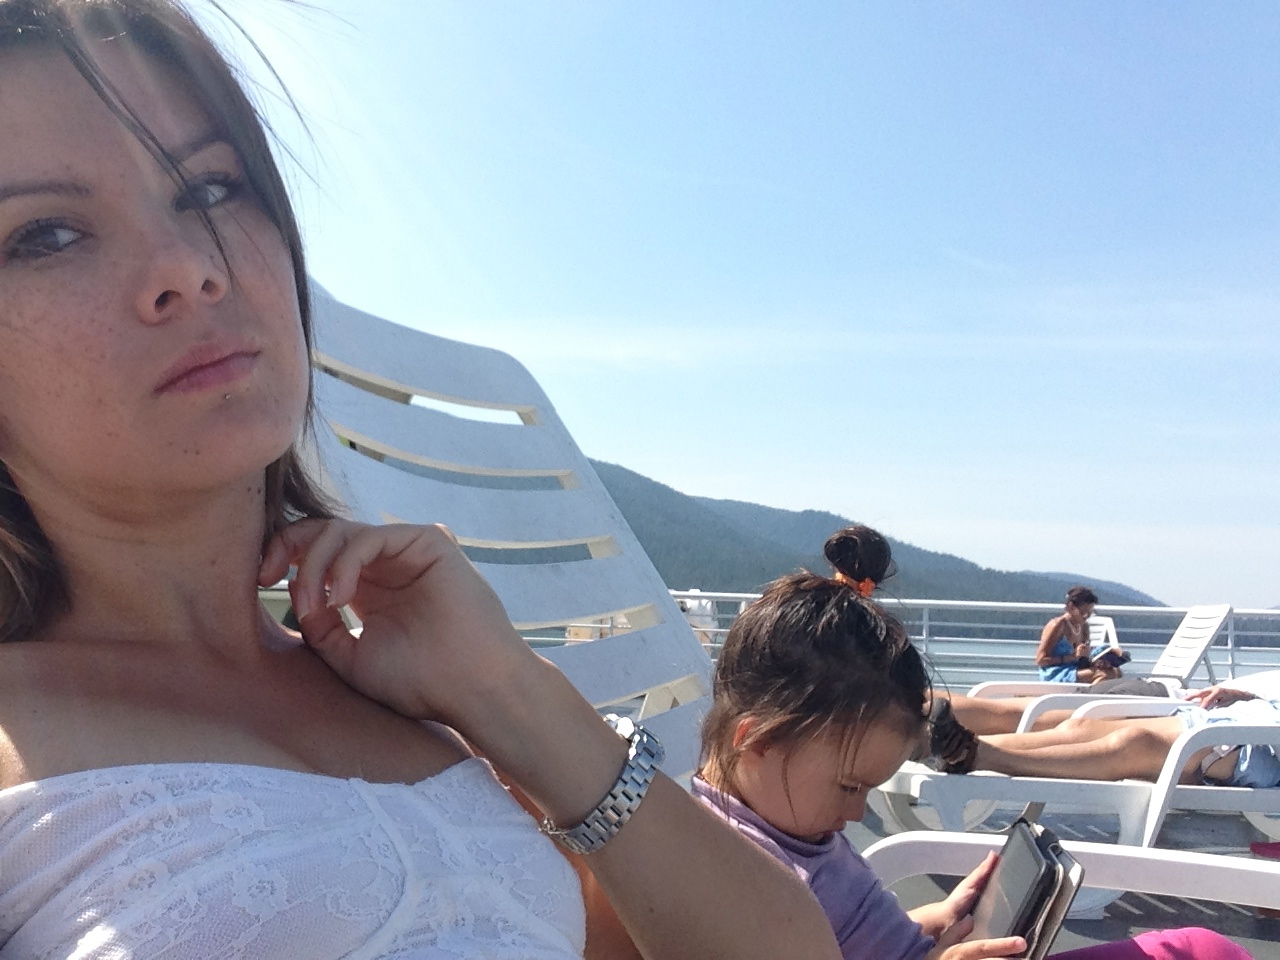 Just taking in some sunshine on the ferry deck.